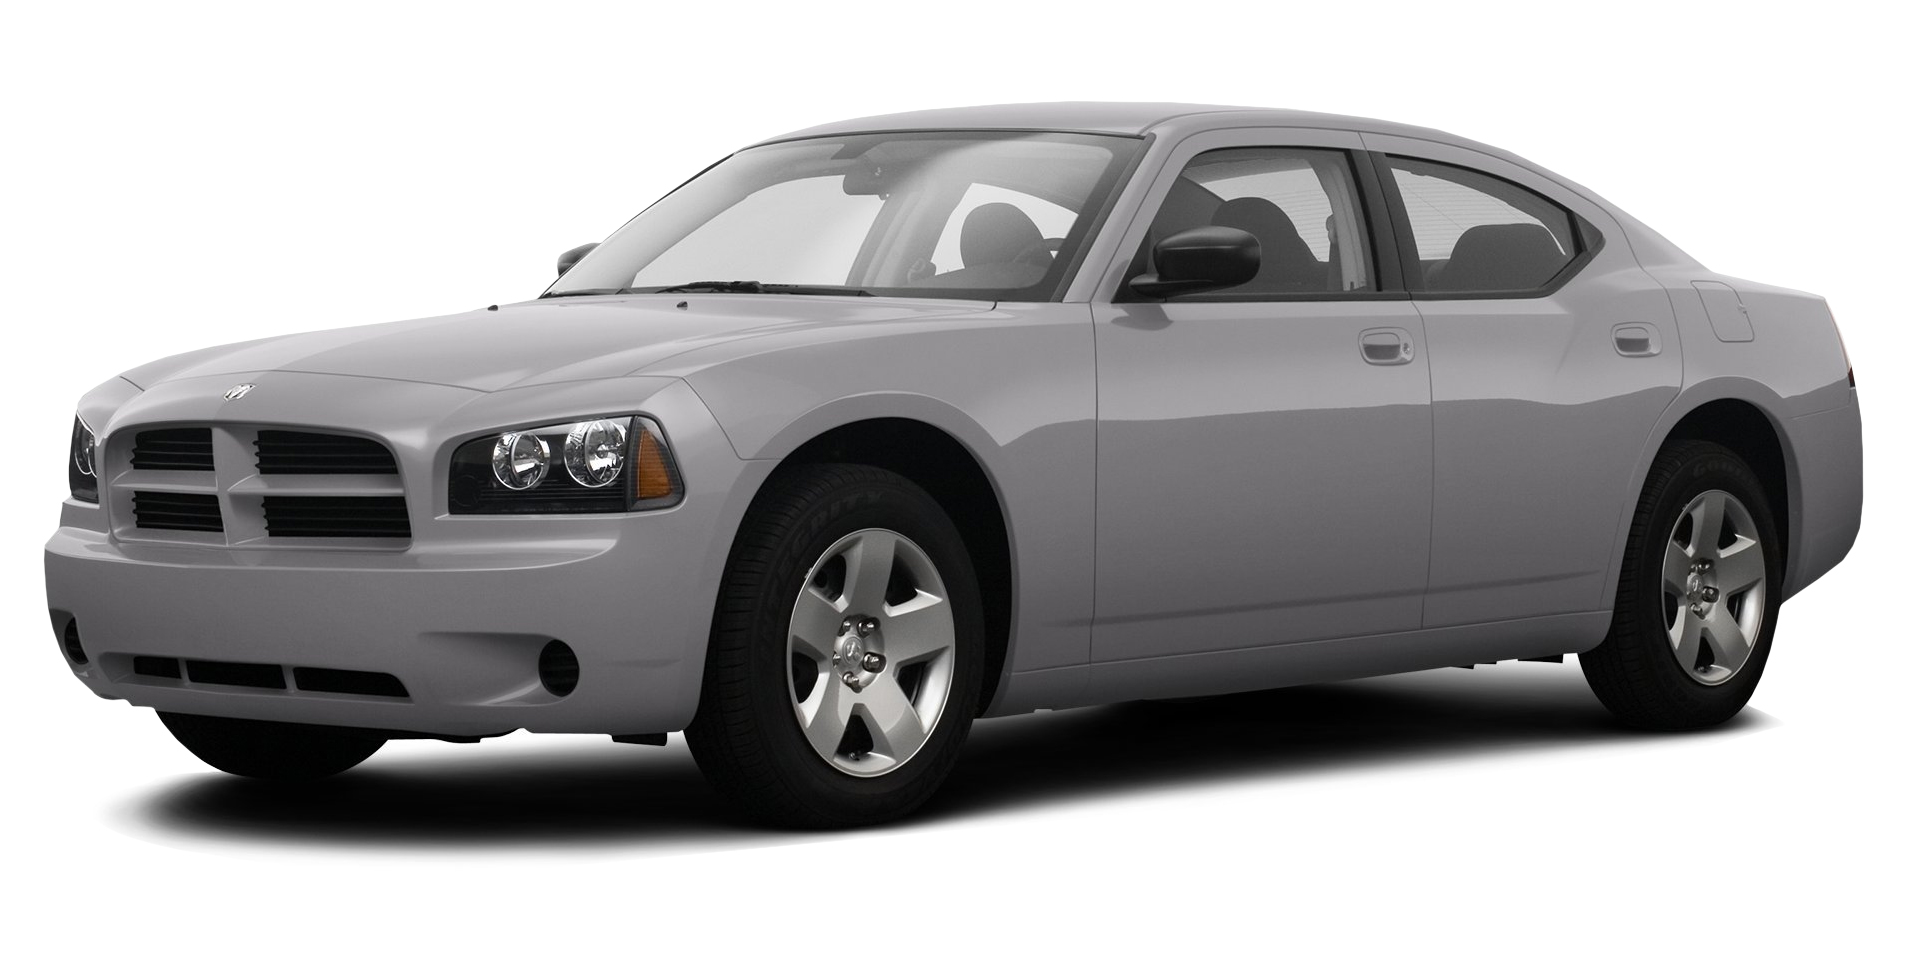 2009 Dodge Charger Tipm Solutions Tipms And Repairs Mak S